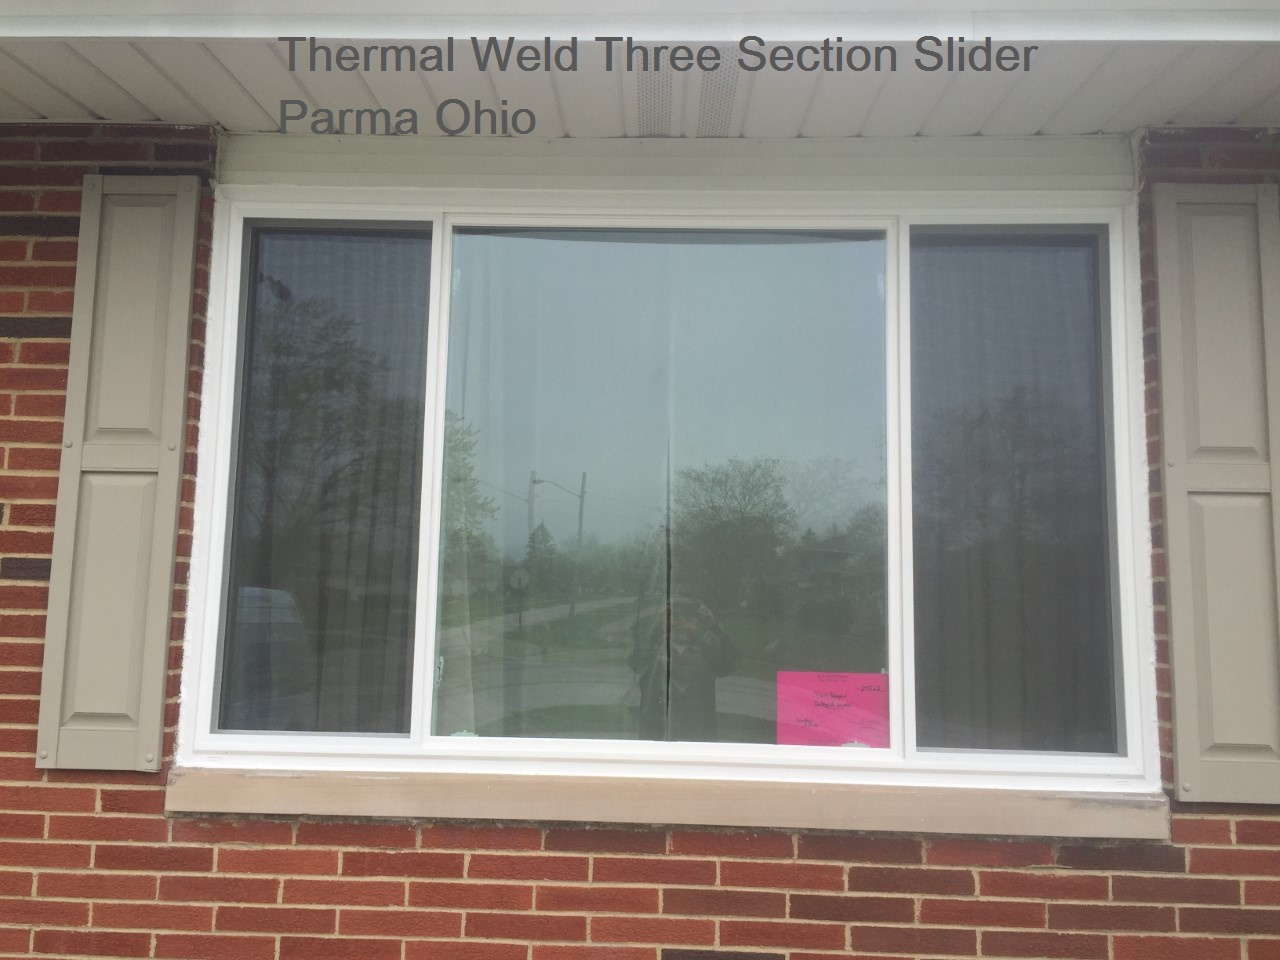 Three Section Slider Replacement Windows ⋆ Integrity Windows